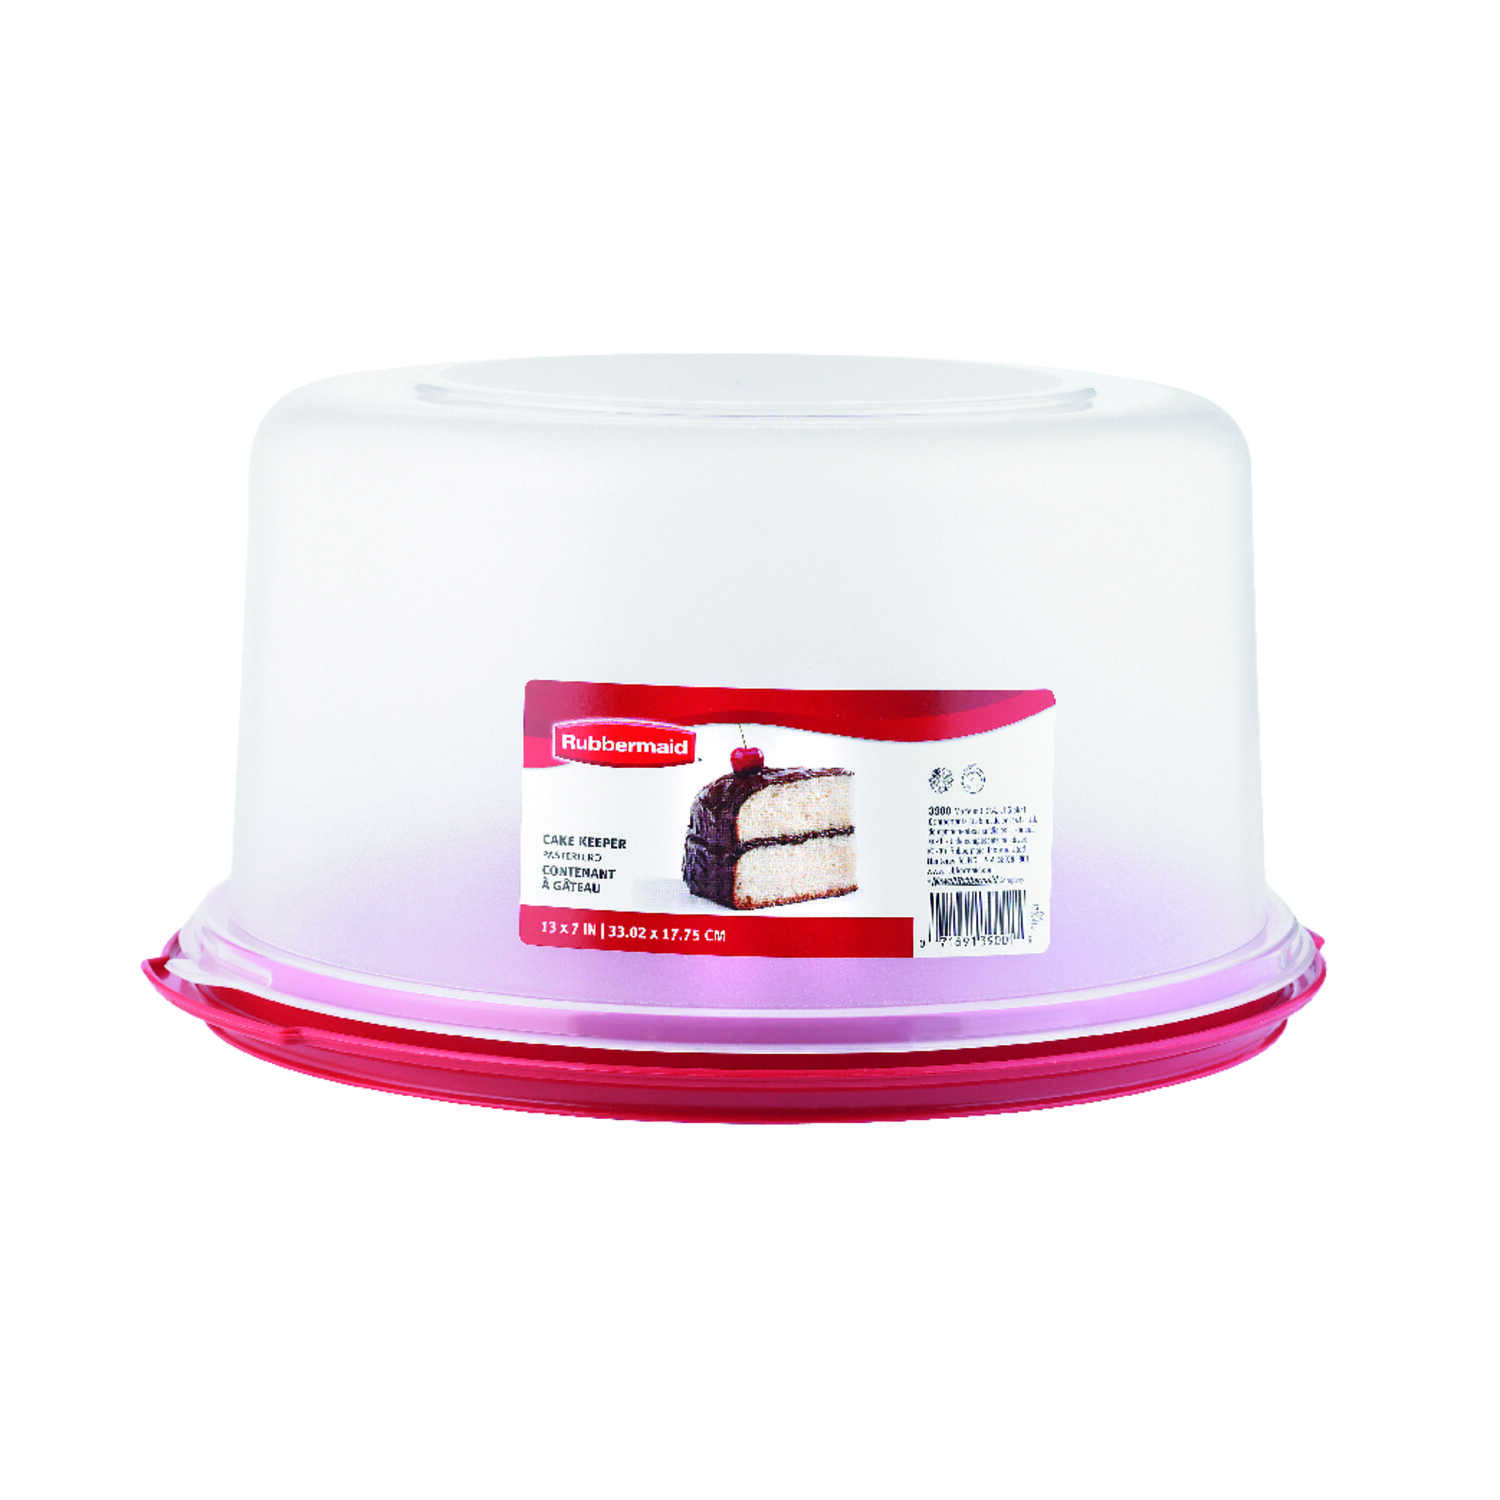 Rubbermaid  Cake Serve N Save